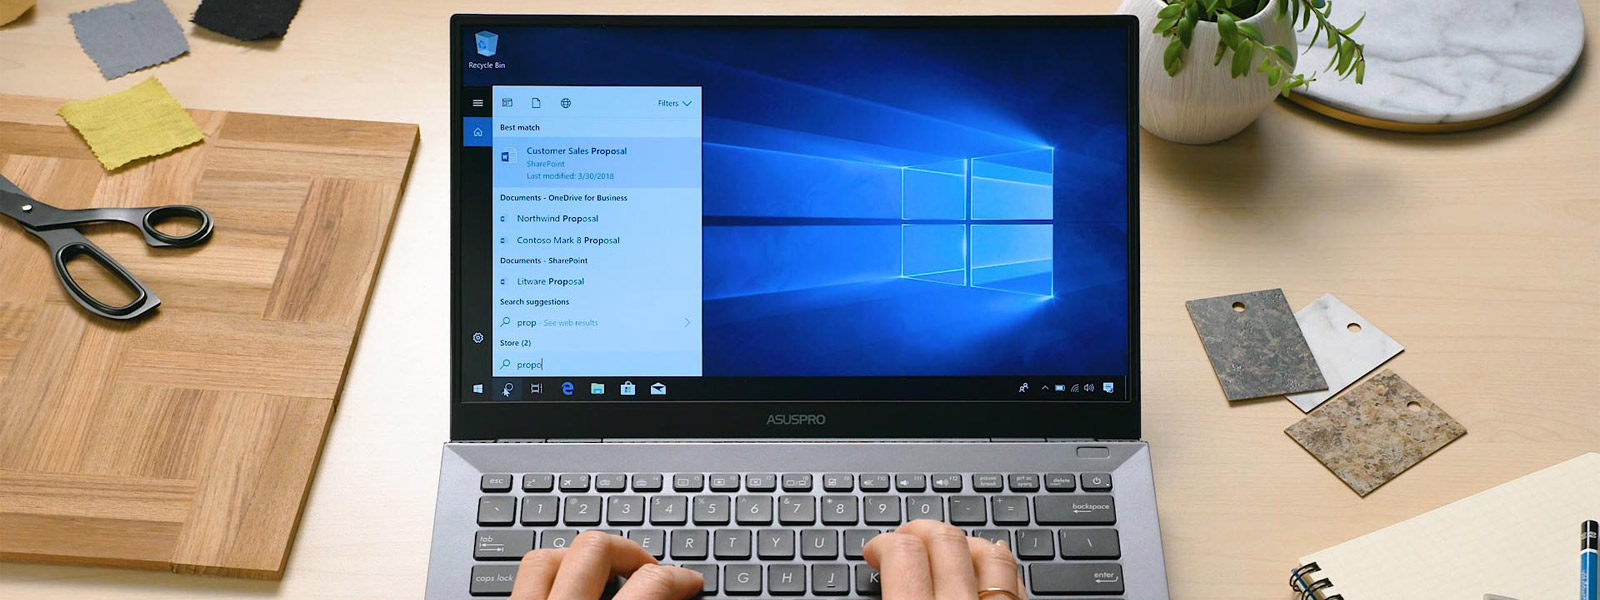 Man using touch screen laptop and the Windows Timeline feature